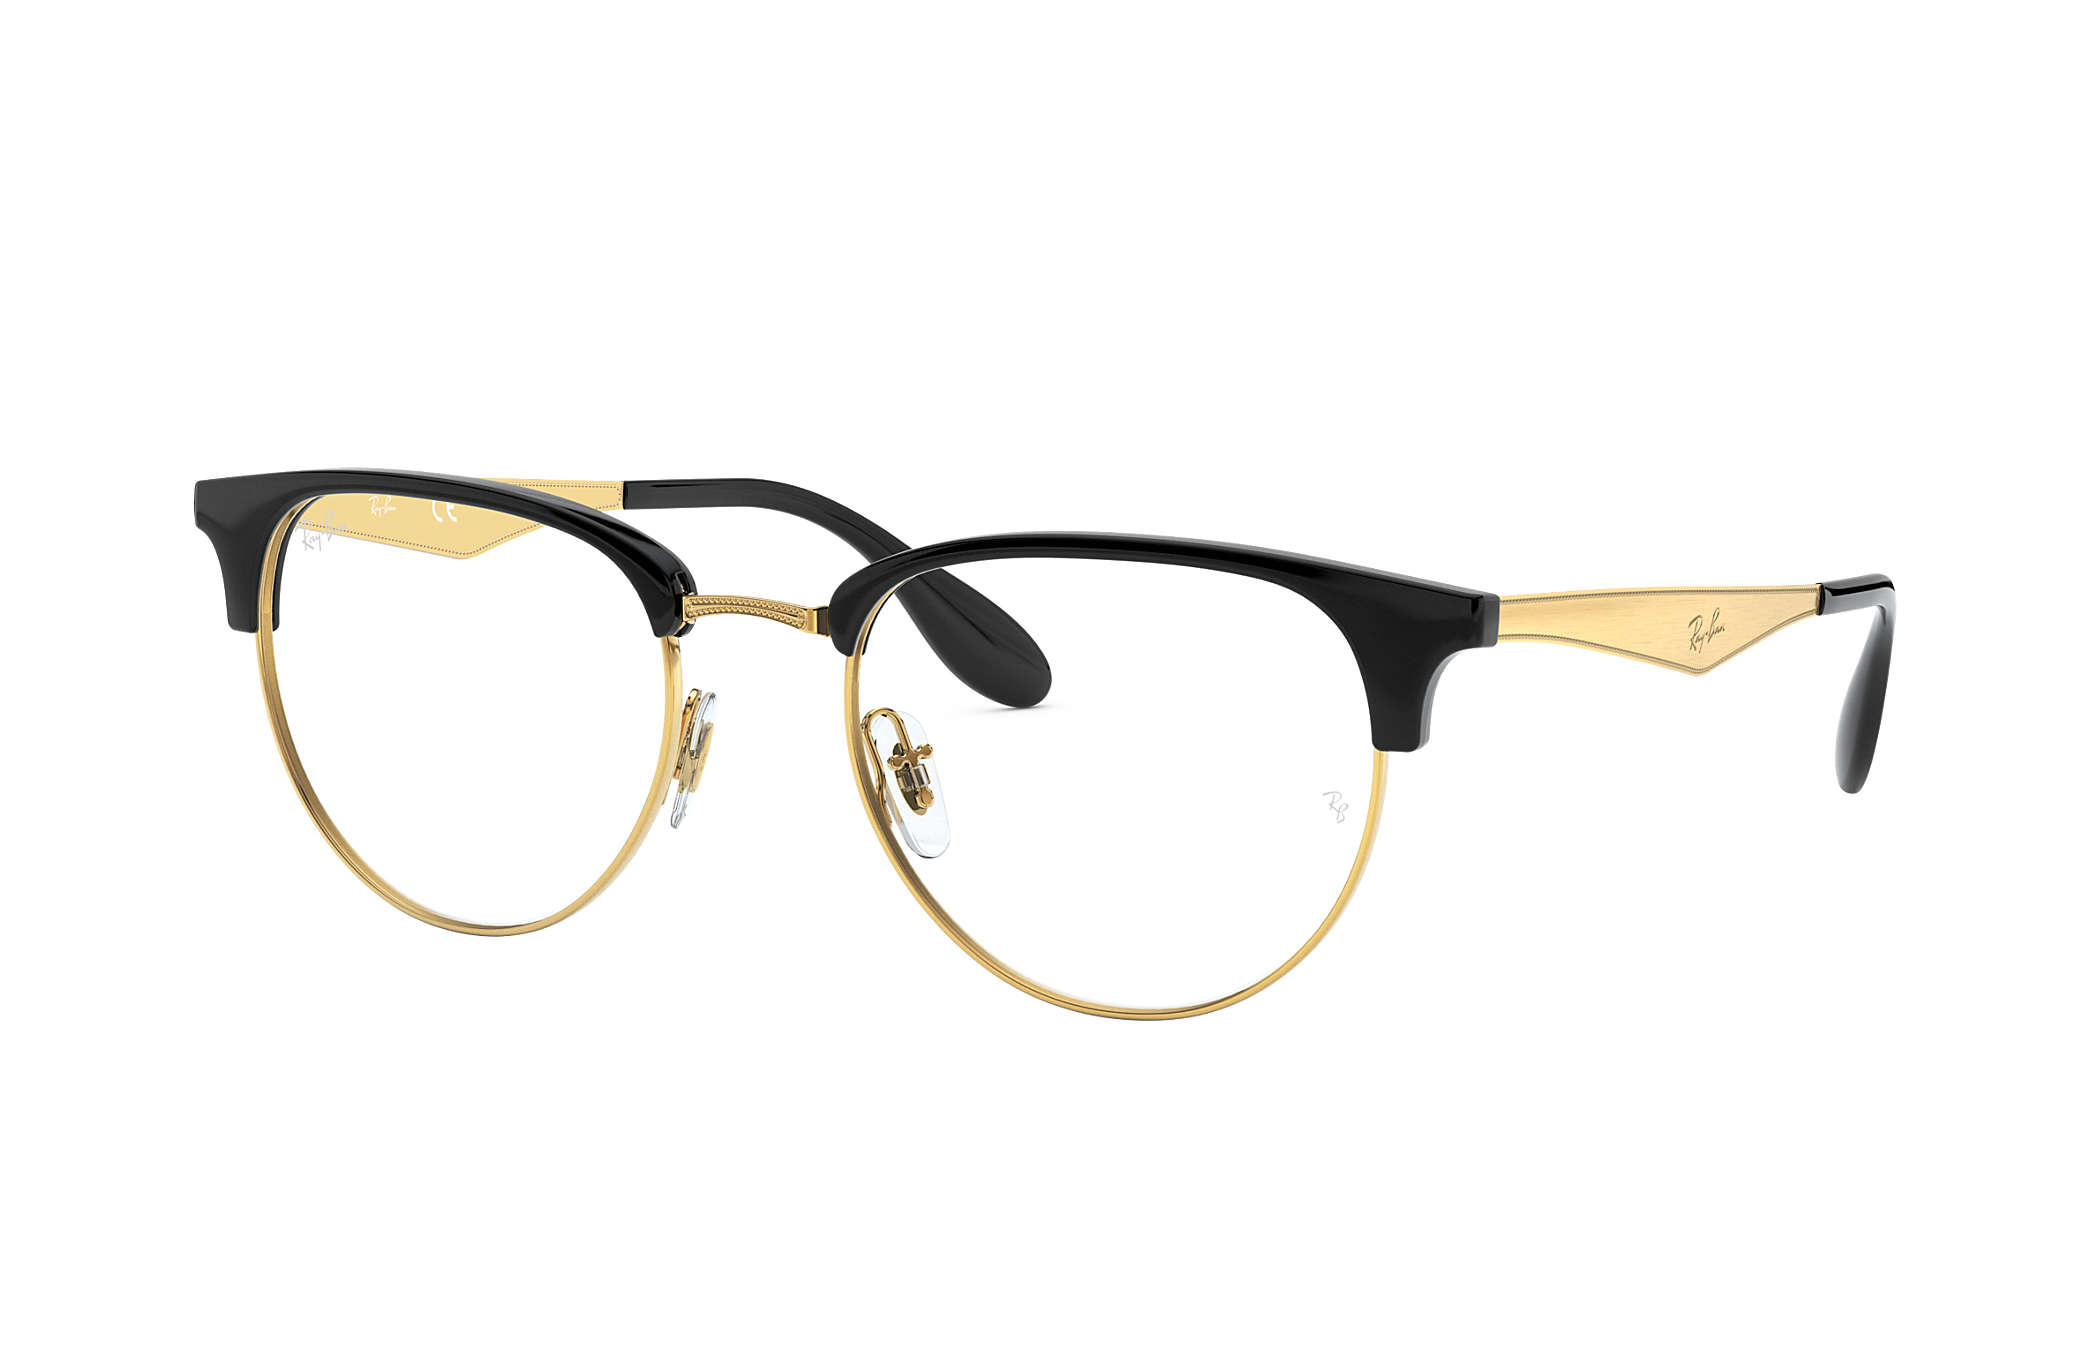 580bf1eb6a Ray-Ban prescription glasses RB6396 Black - Metal - 0RX6396578451 ...